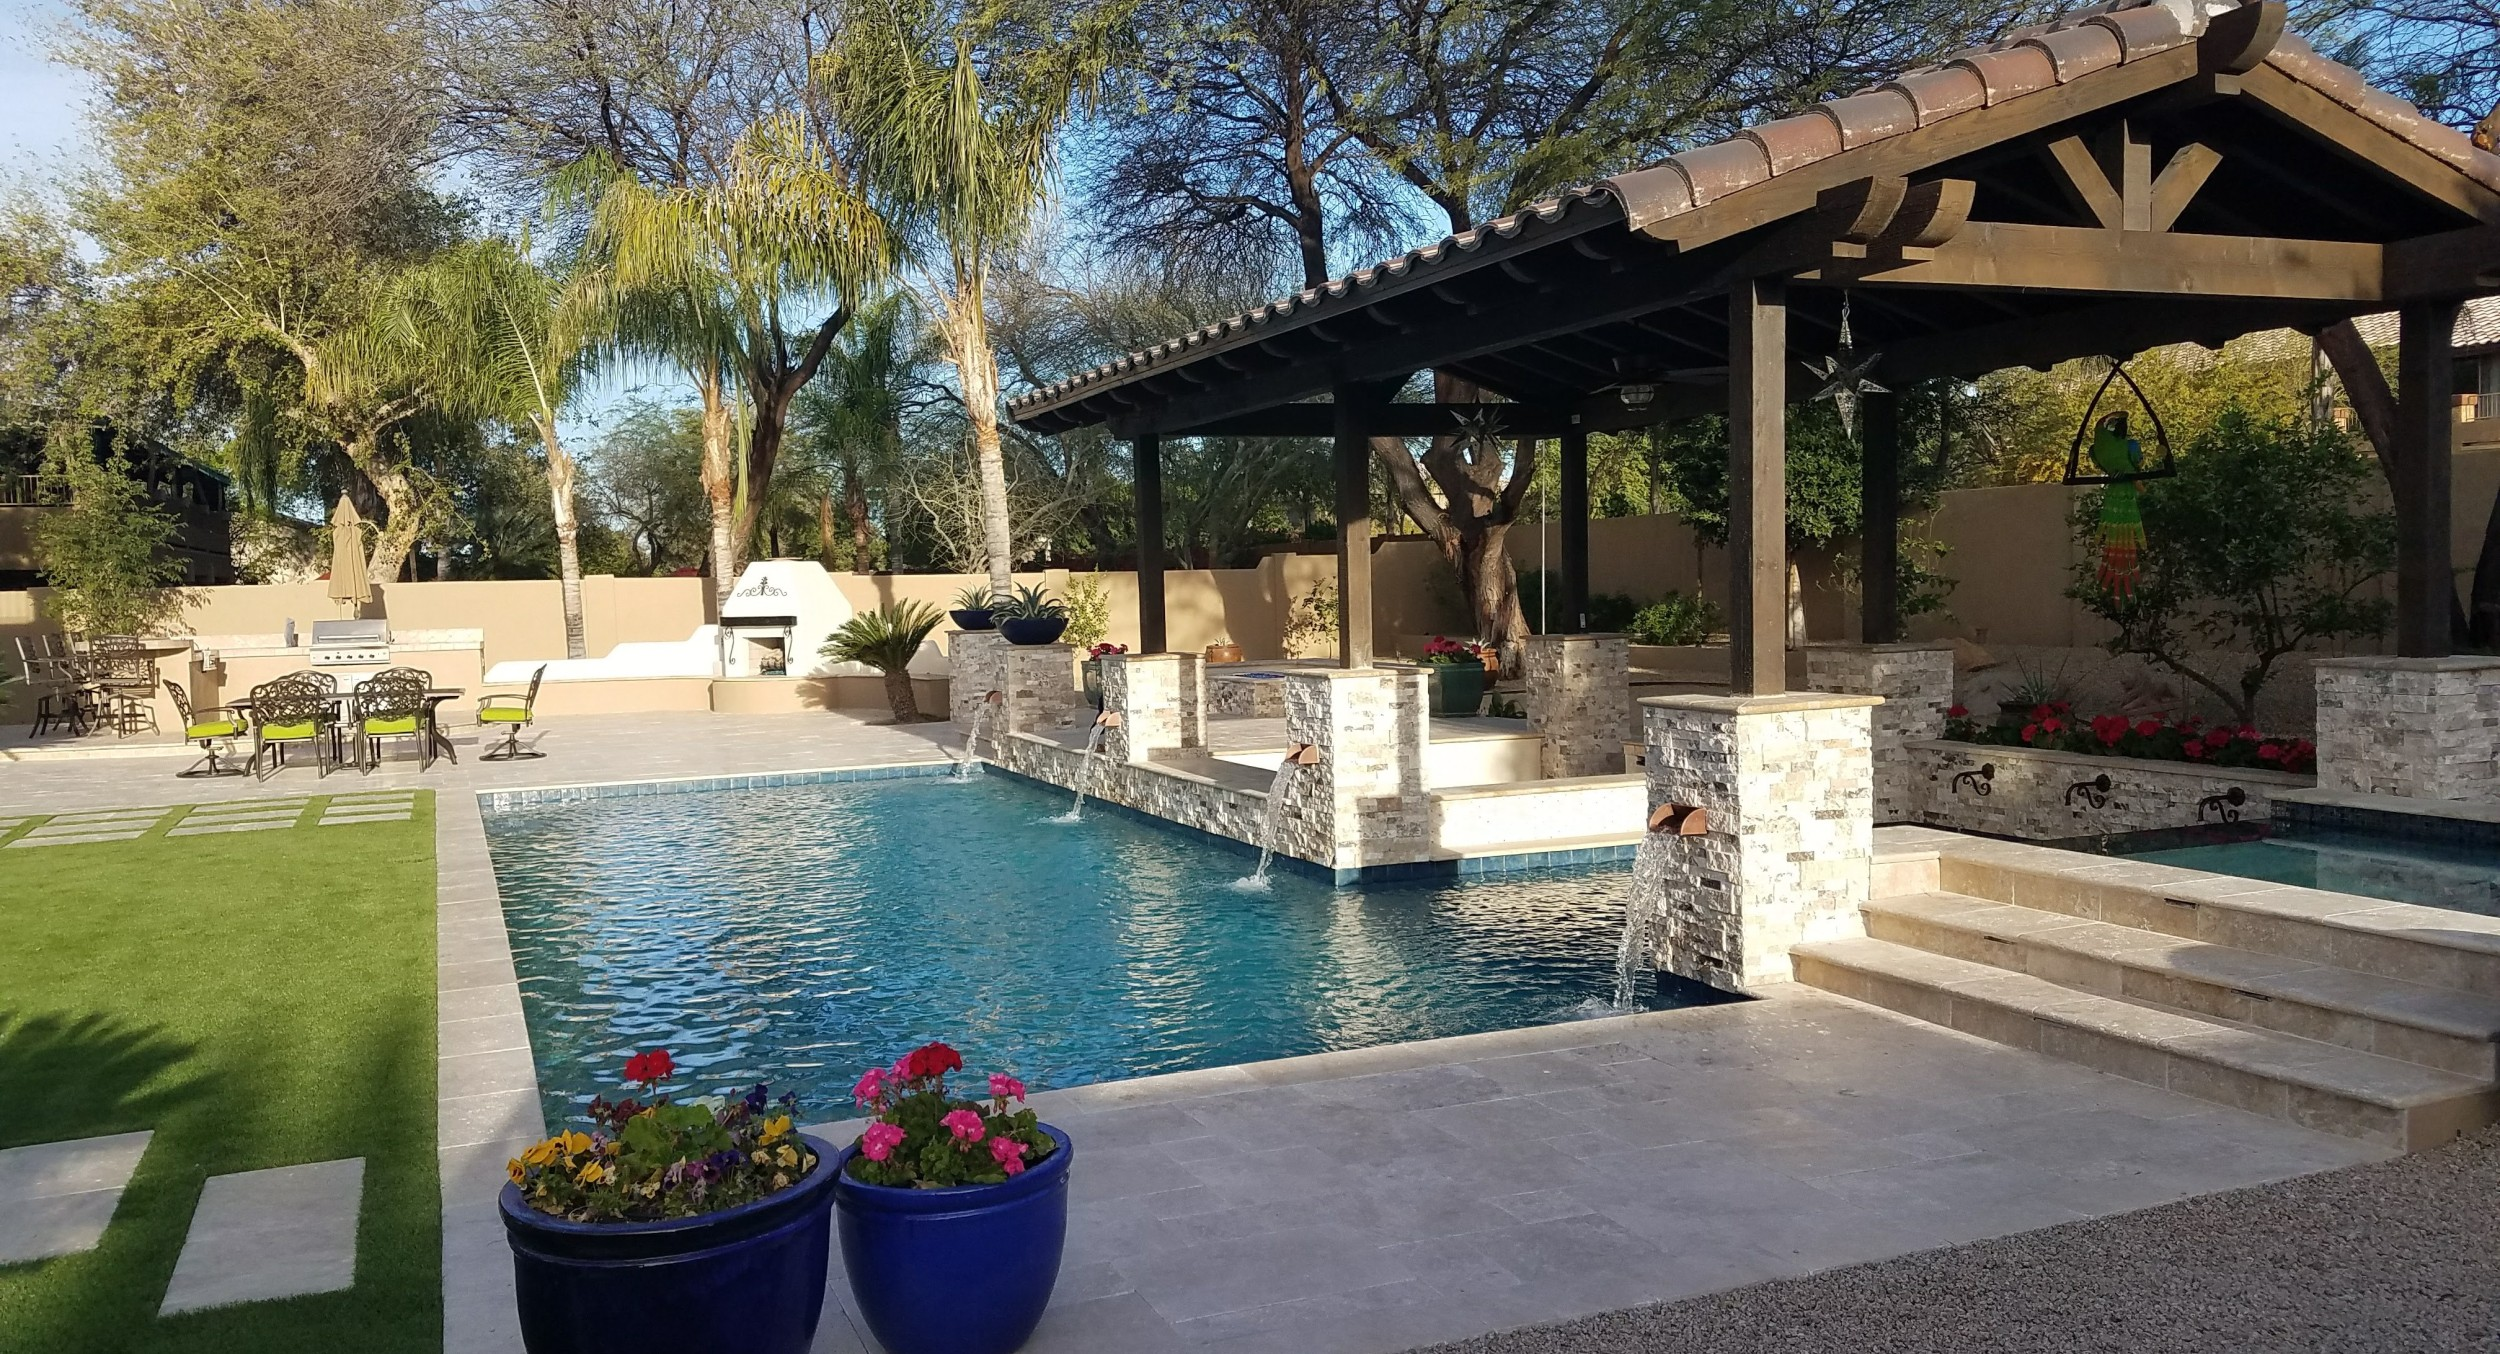 Welcome Home: Scottsdale - Phoenix landscaping by Desert Crest LLC includes everything under the sun. Pools, outdoor living spaces, and more.